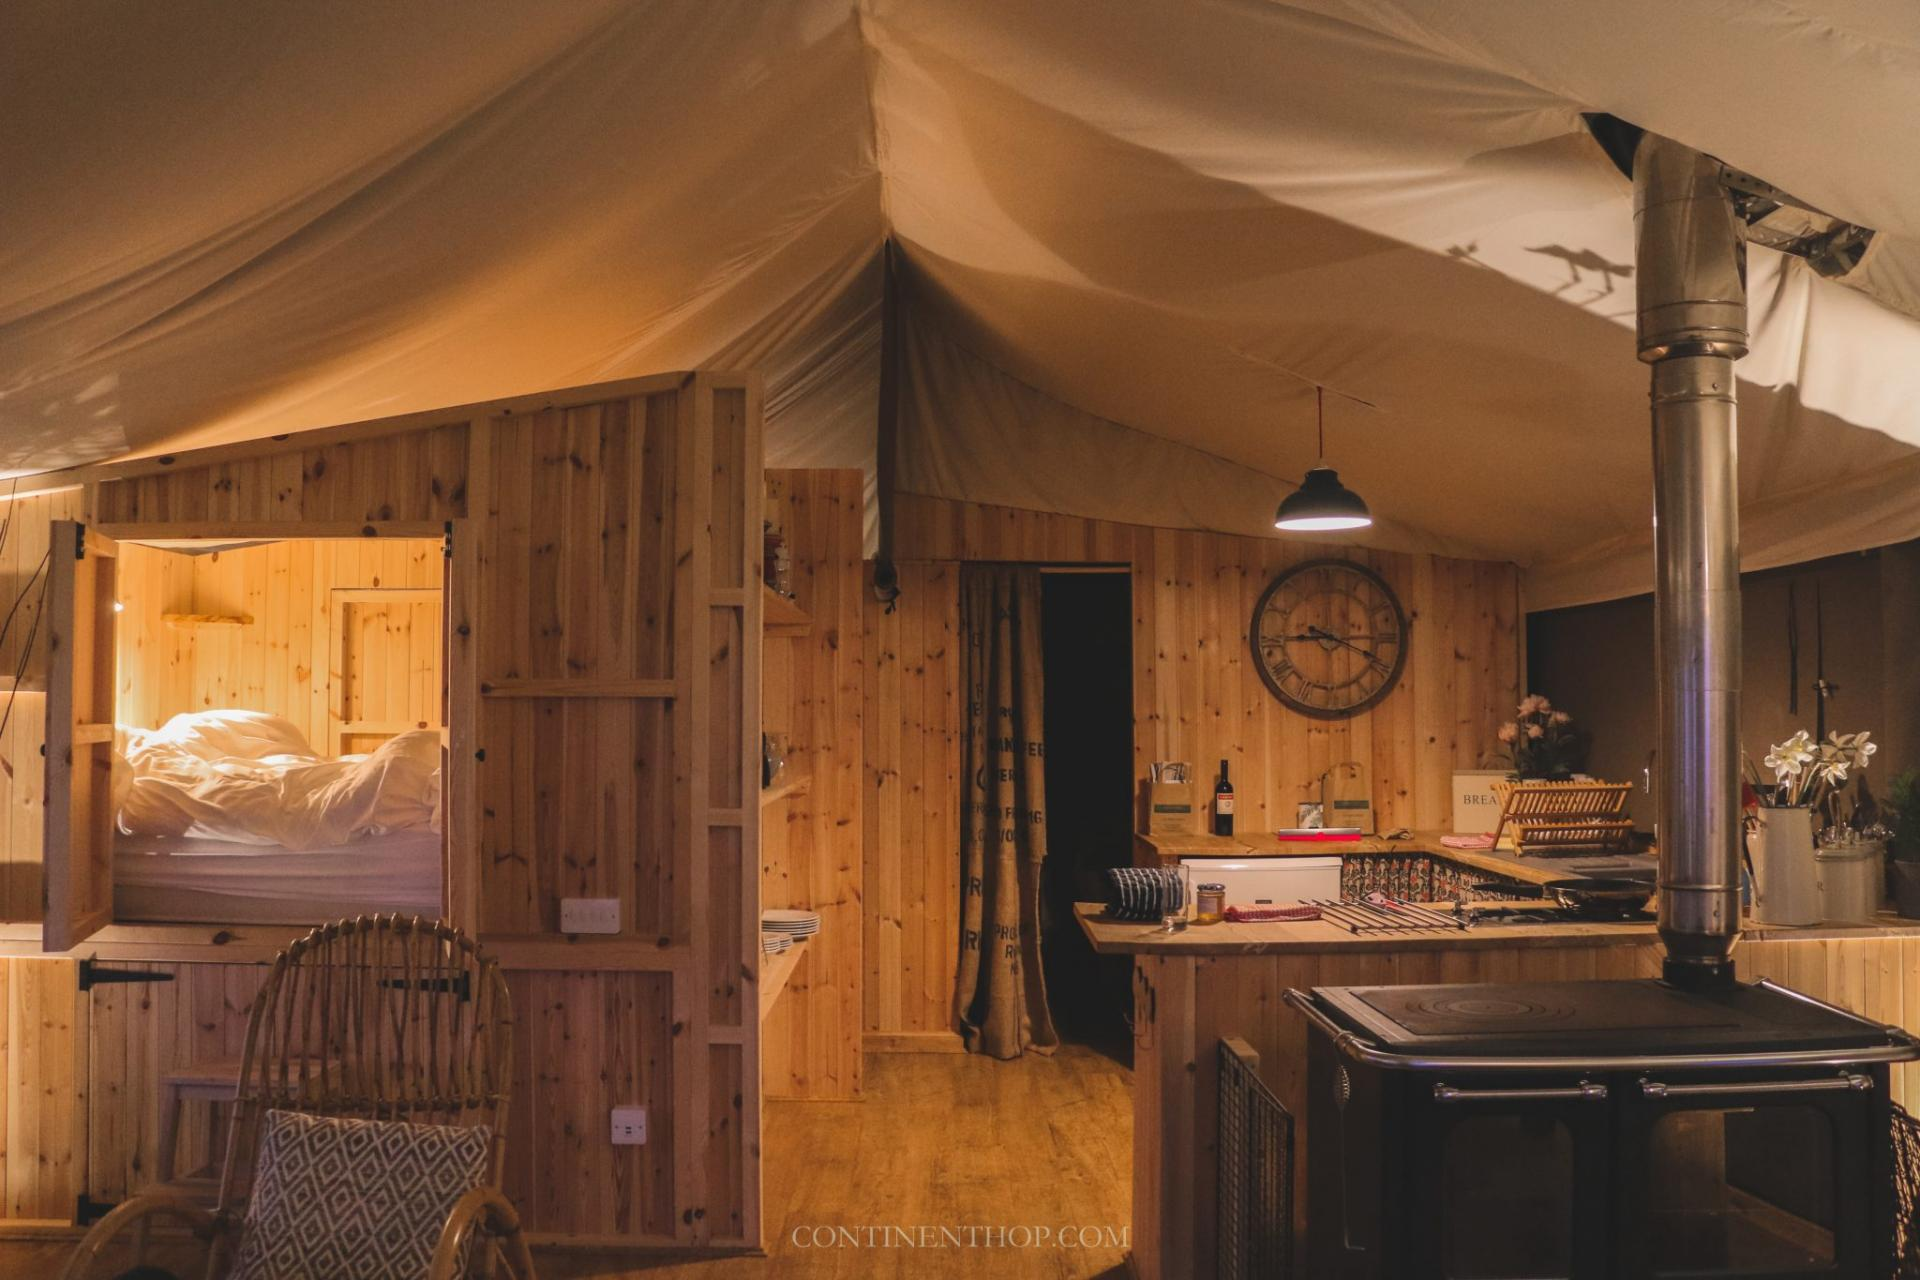 catchpenny glamping tents in fife scotland